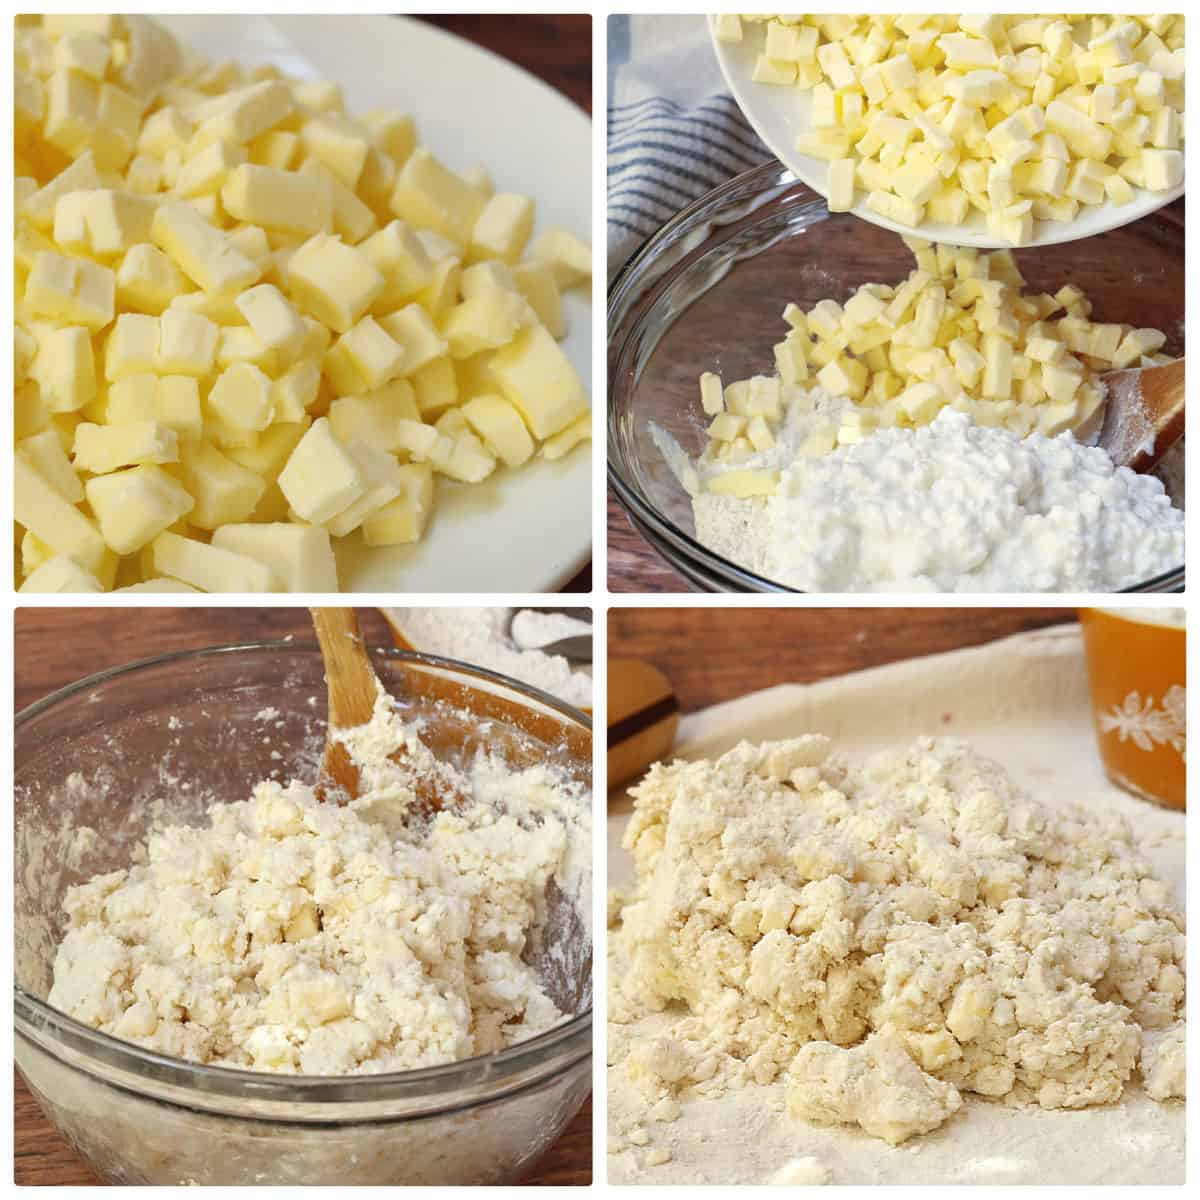 mixing the dough batter with flour,butter and cottage cheese